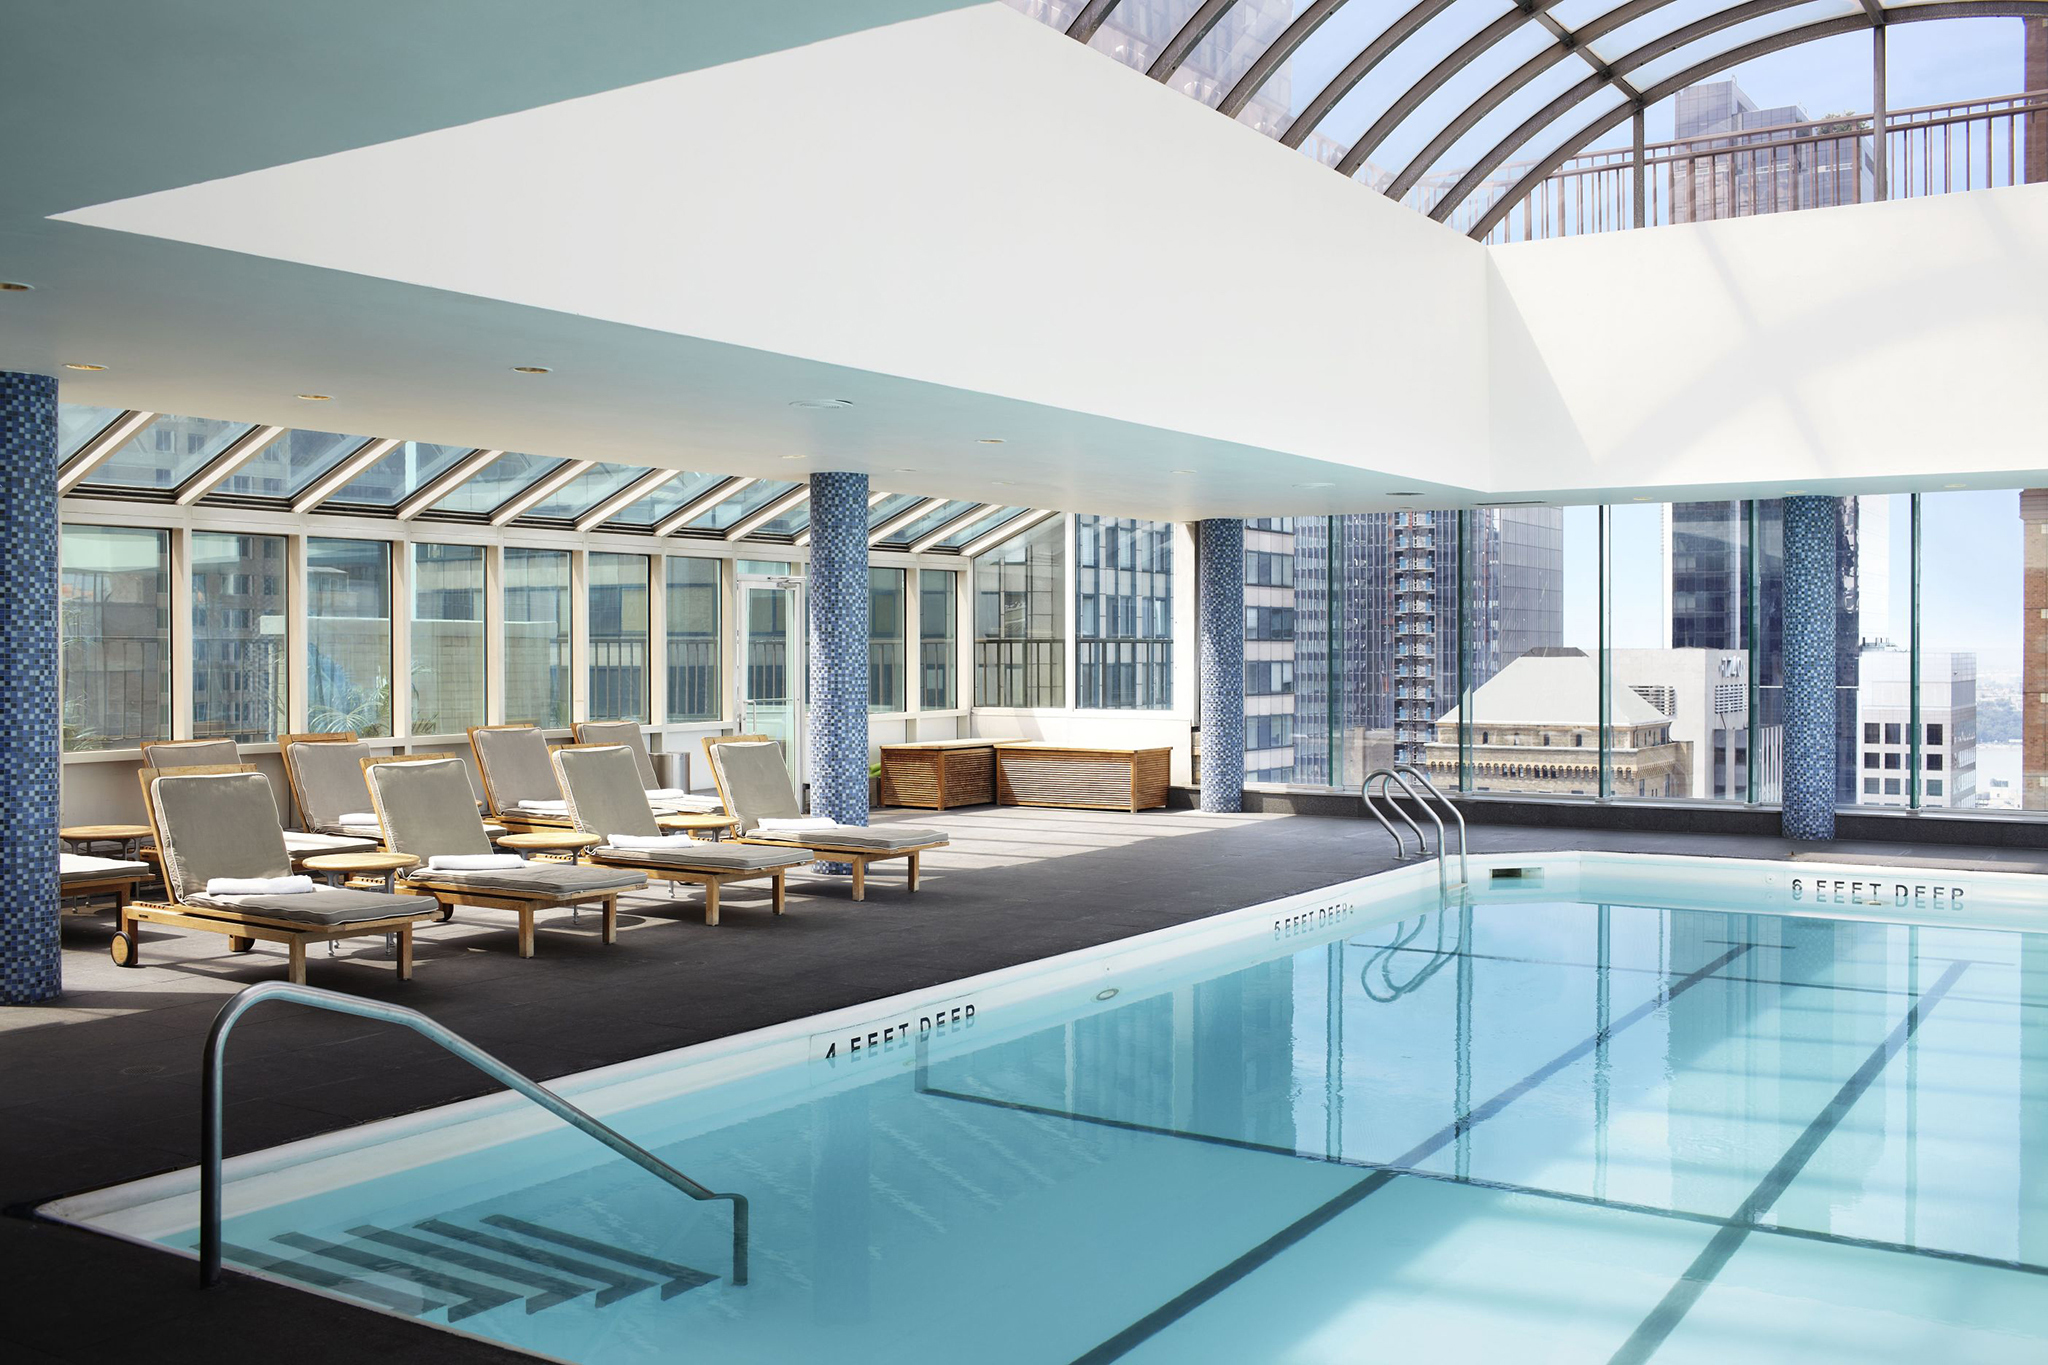 Best family hotels in NYC for the ultimate kid-friendly vacation